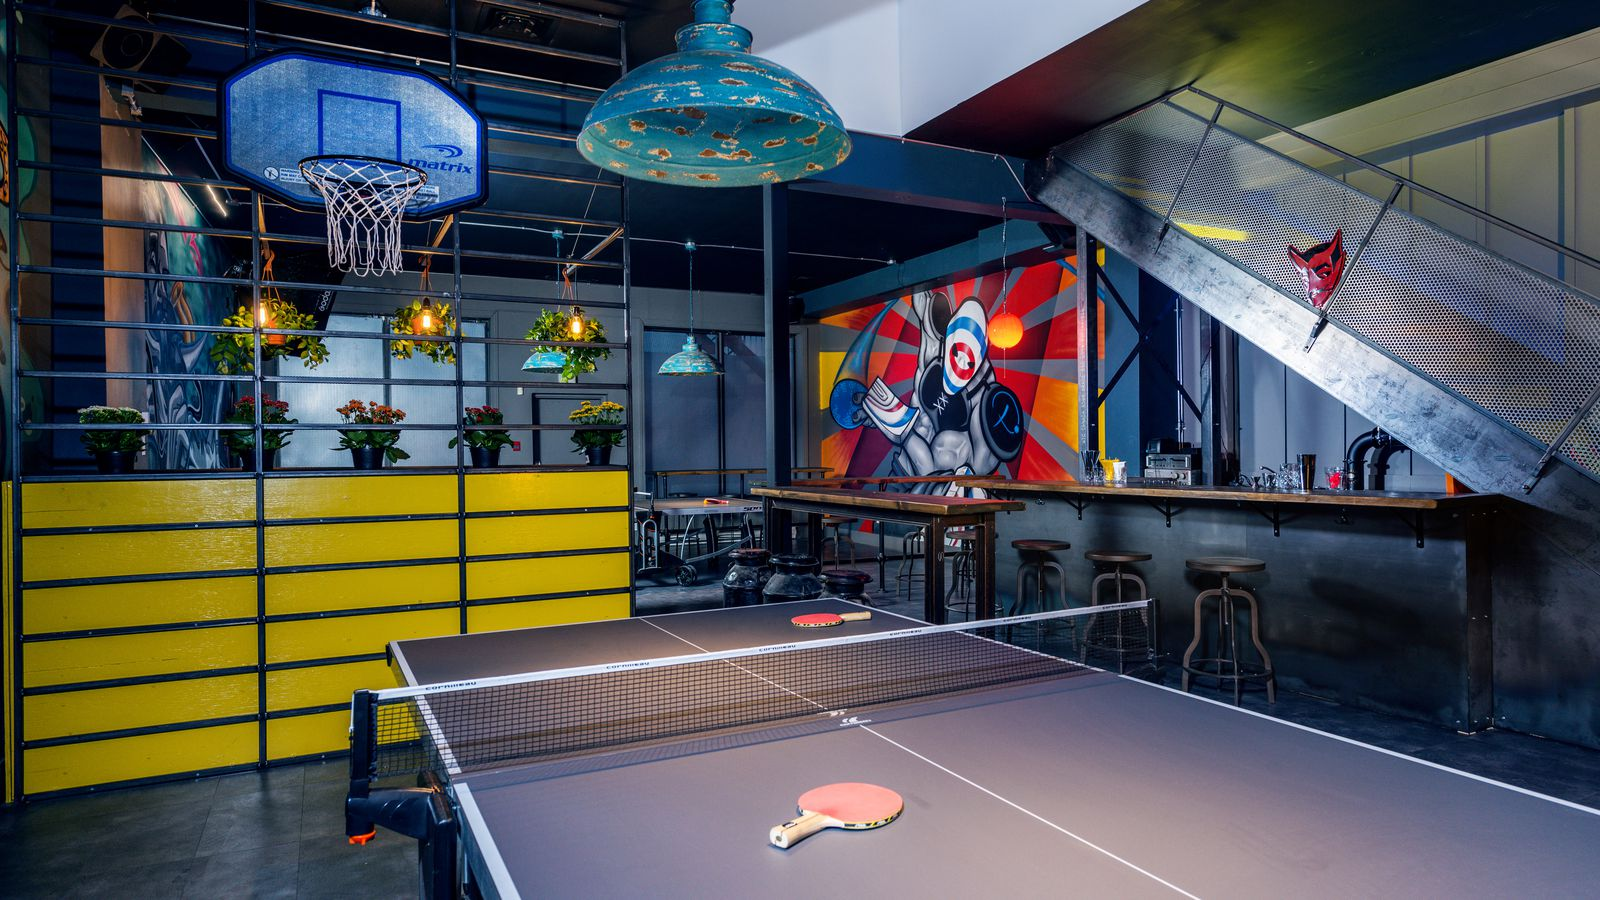 Serve's Up: Montreal's Ping Pong Bar Playground Opens ...